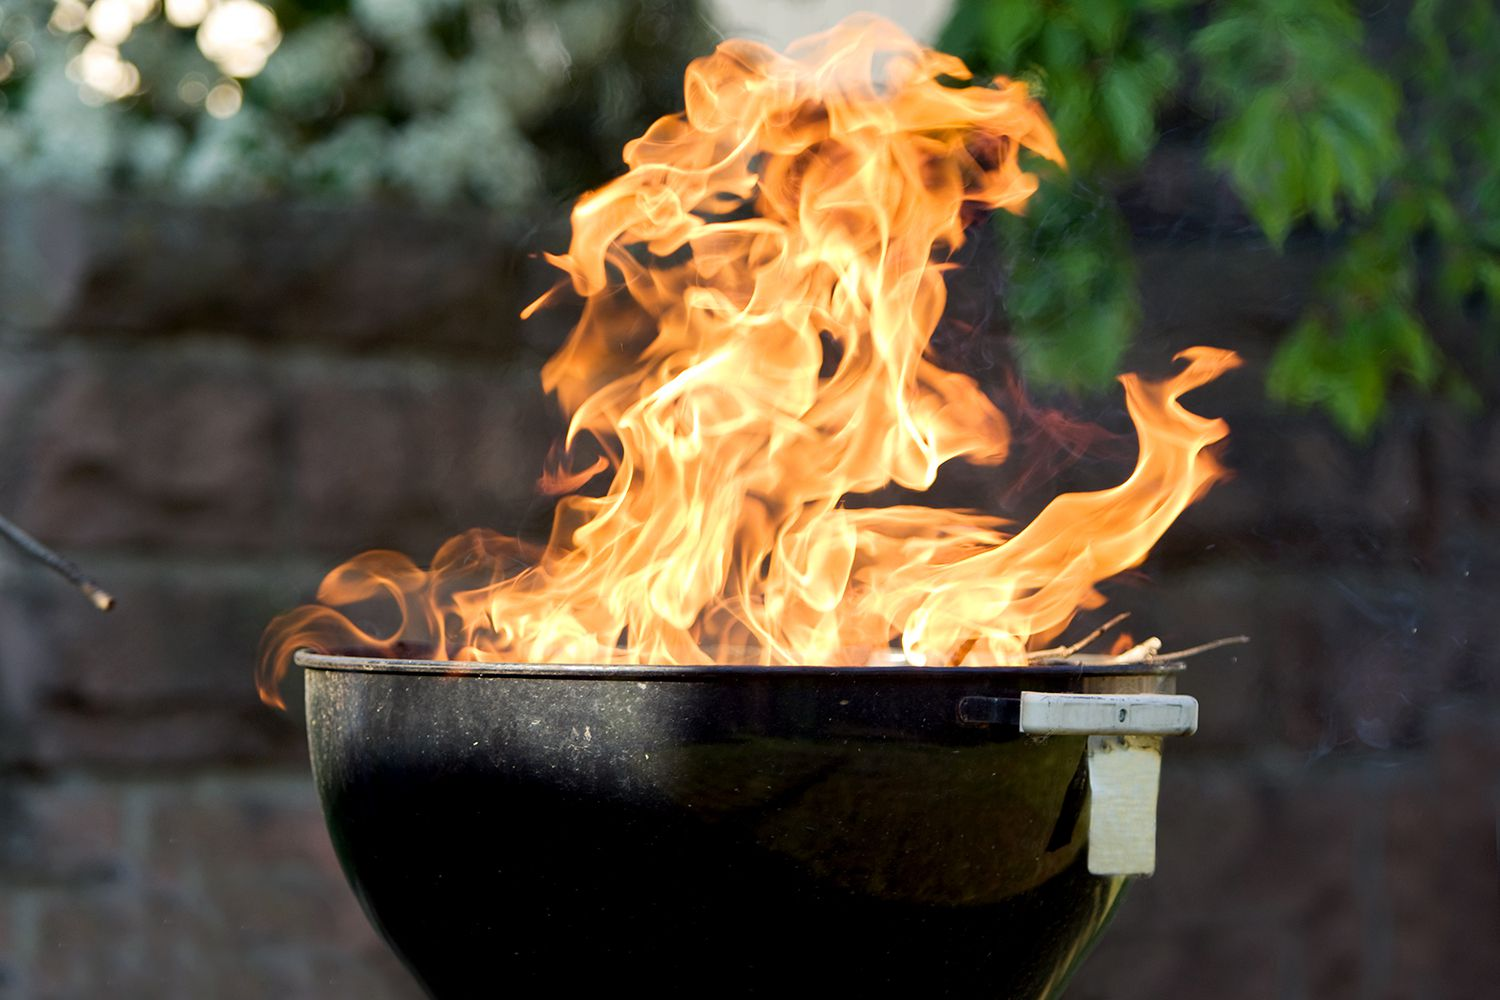 Raging flames from charcoal barbecue grill.